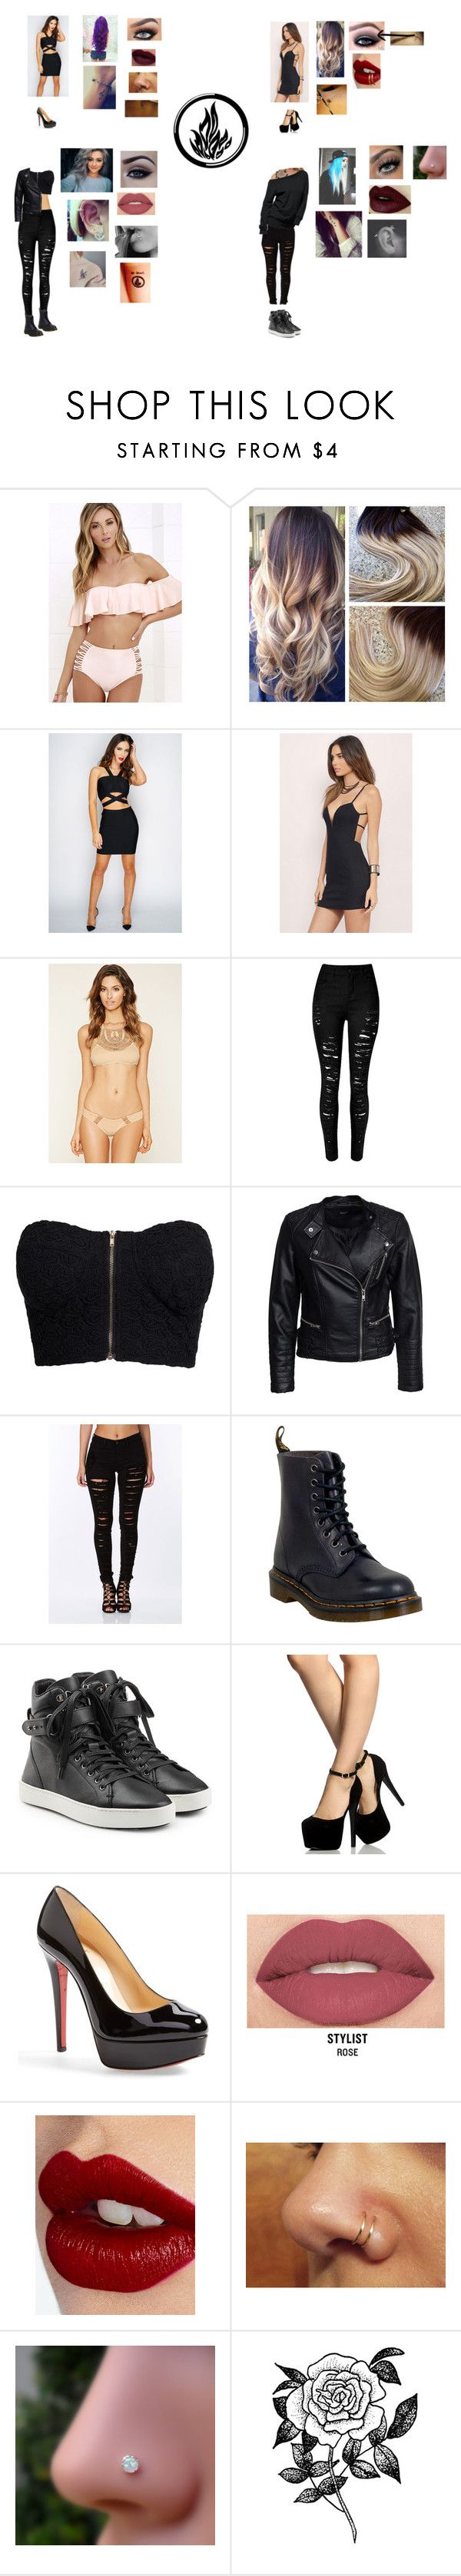 """""""Dauntless Outfits"""" by swag67 ❤ liked on Polyvore featuring O'Neill, Tobi, Forever 21, NLY Trend, Sisters Point, Dr. Martens, rag & bone, Christian Louboutin, Smashbox and Charlotte Tilbury"""